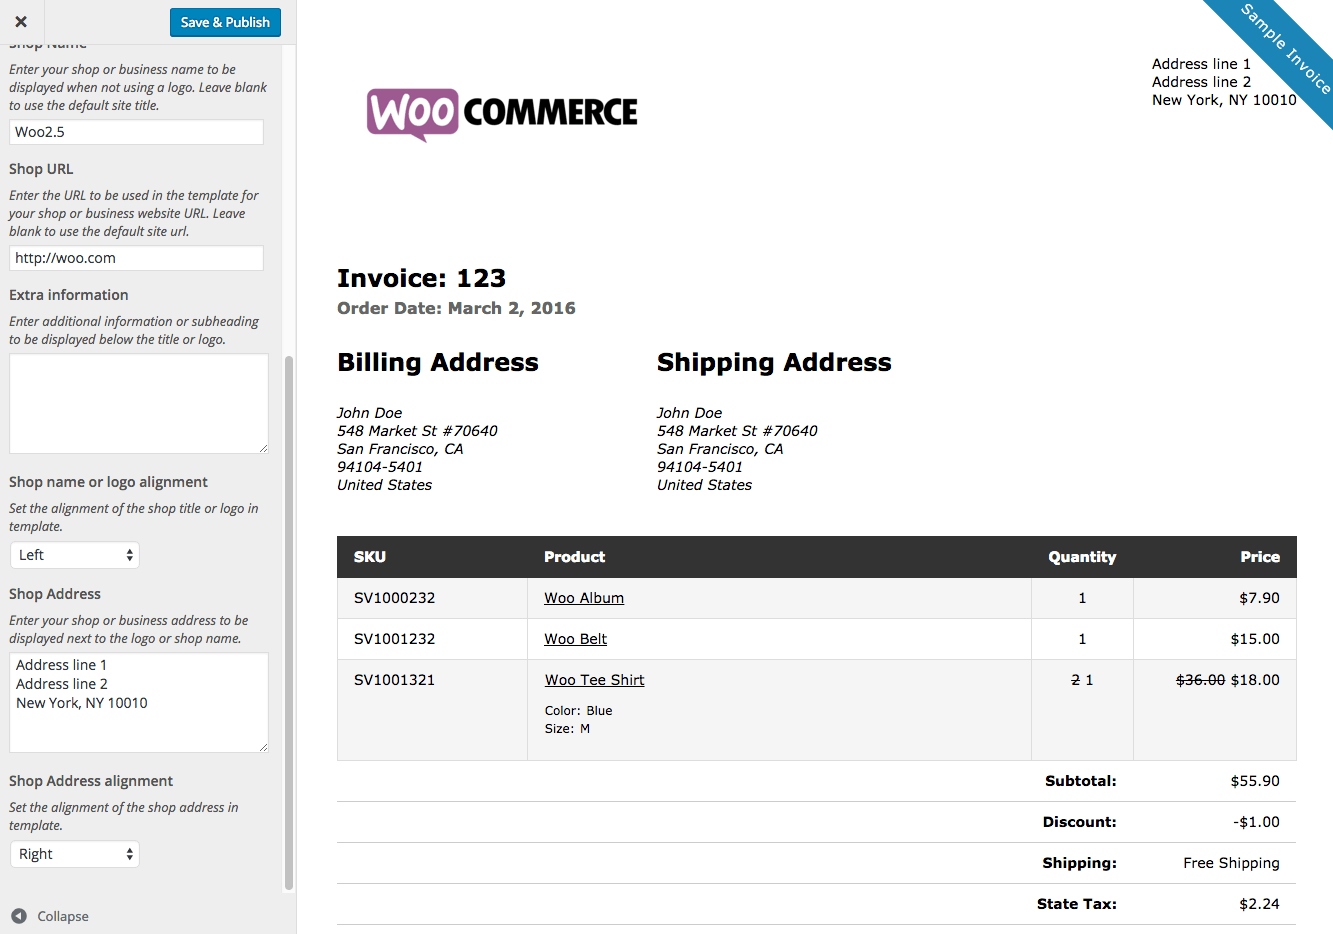 Coolmathgamesus  Marvelous Print Invoices Amp Packing Lists  Woocommerce With Hot Woocommerce Print Invoices  Packing Lists Customizer With Divine Trust Receipt Meaning Also What Is Mrv Receipt Number In Addition Abortion Receipt Form And Receipt And Release Form As Well As Best App To Organize Receipts Additionally Receipt Software For Small Business Free From Woocommercecom With Coolmathgamesus  Hot Print Invoices Amp Packing Lists  Woocommerce With Divine Woocommerce Print Invoices  Packing Lists Customizer And Marvelous Trust Receipt Meaning Also What Is Mrv Receipt Number In Addition Abortion Receipt Form From Woocommercecom